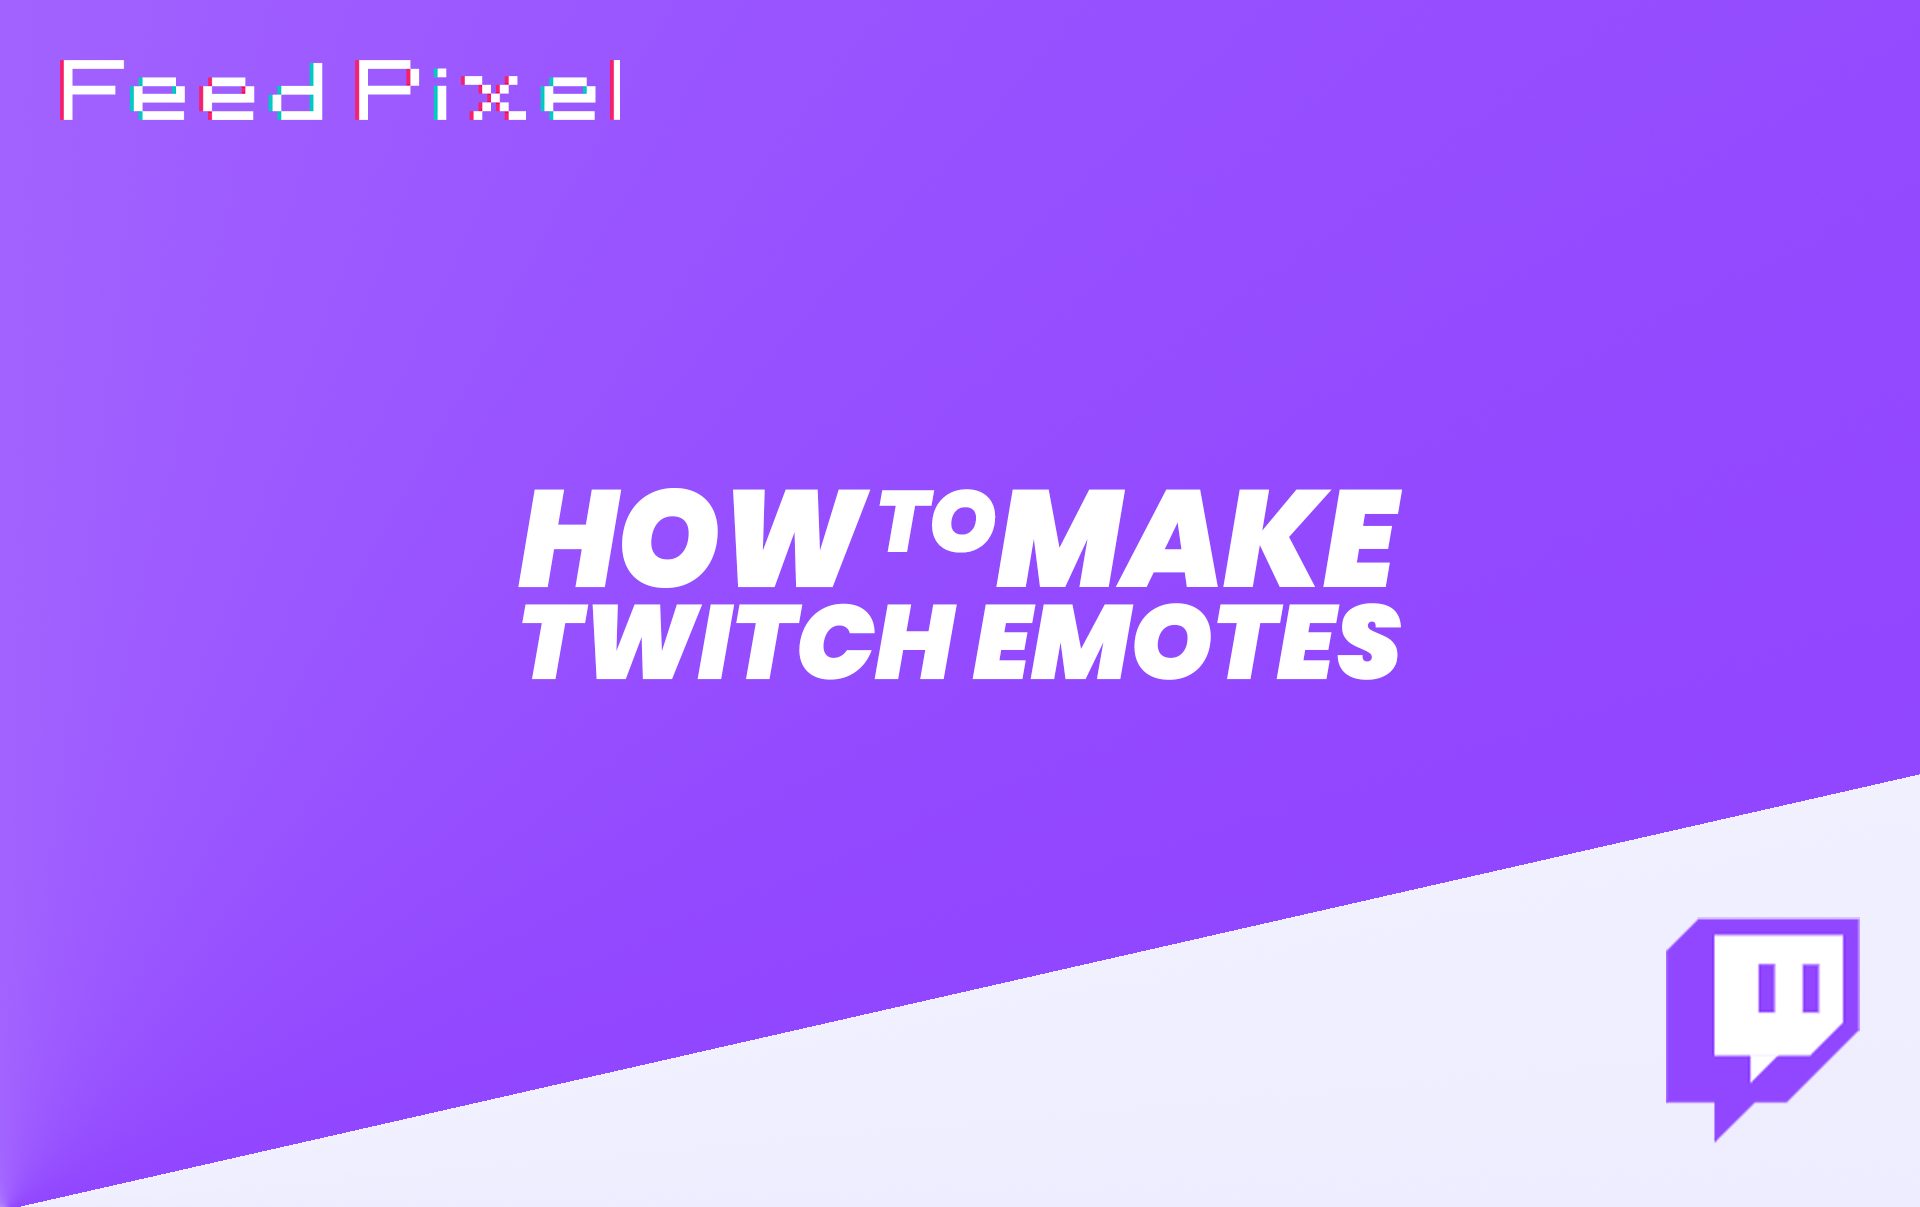 How To Make Twitch Emotes? With a Few Easy Steps